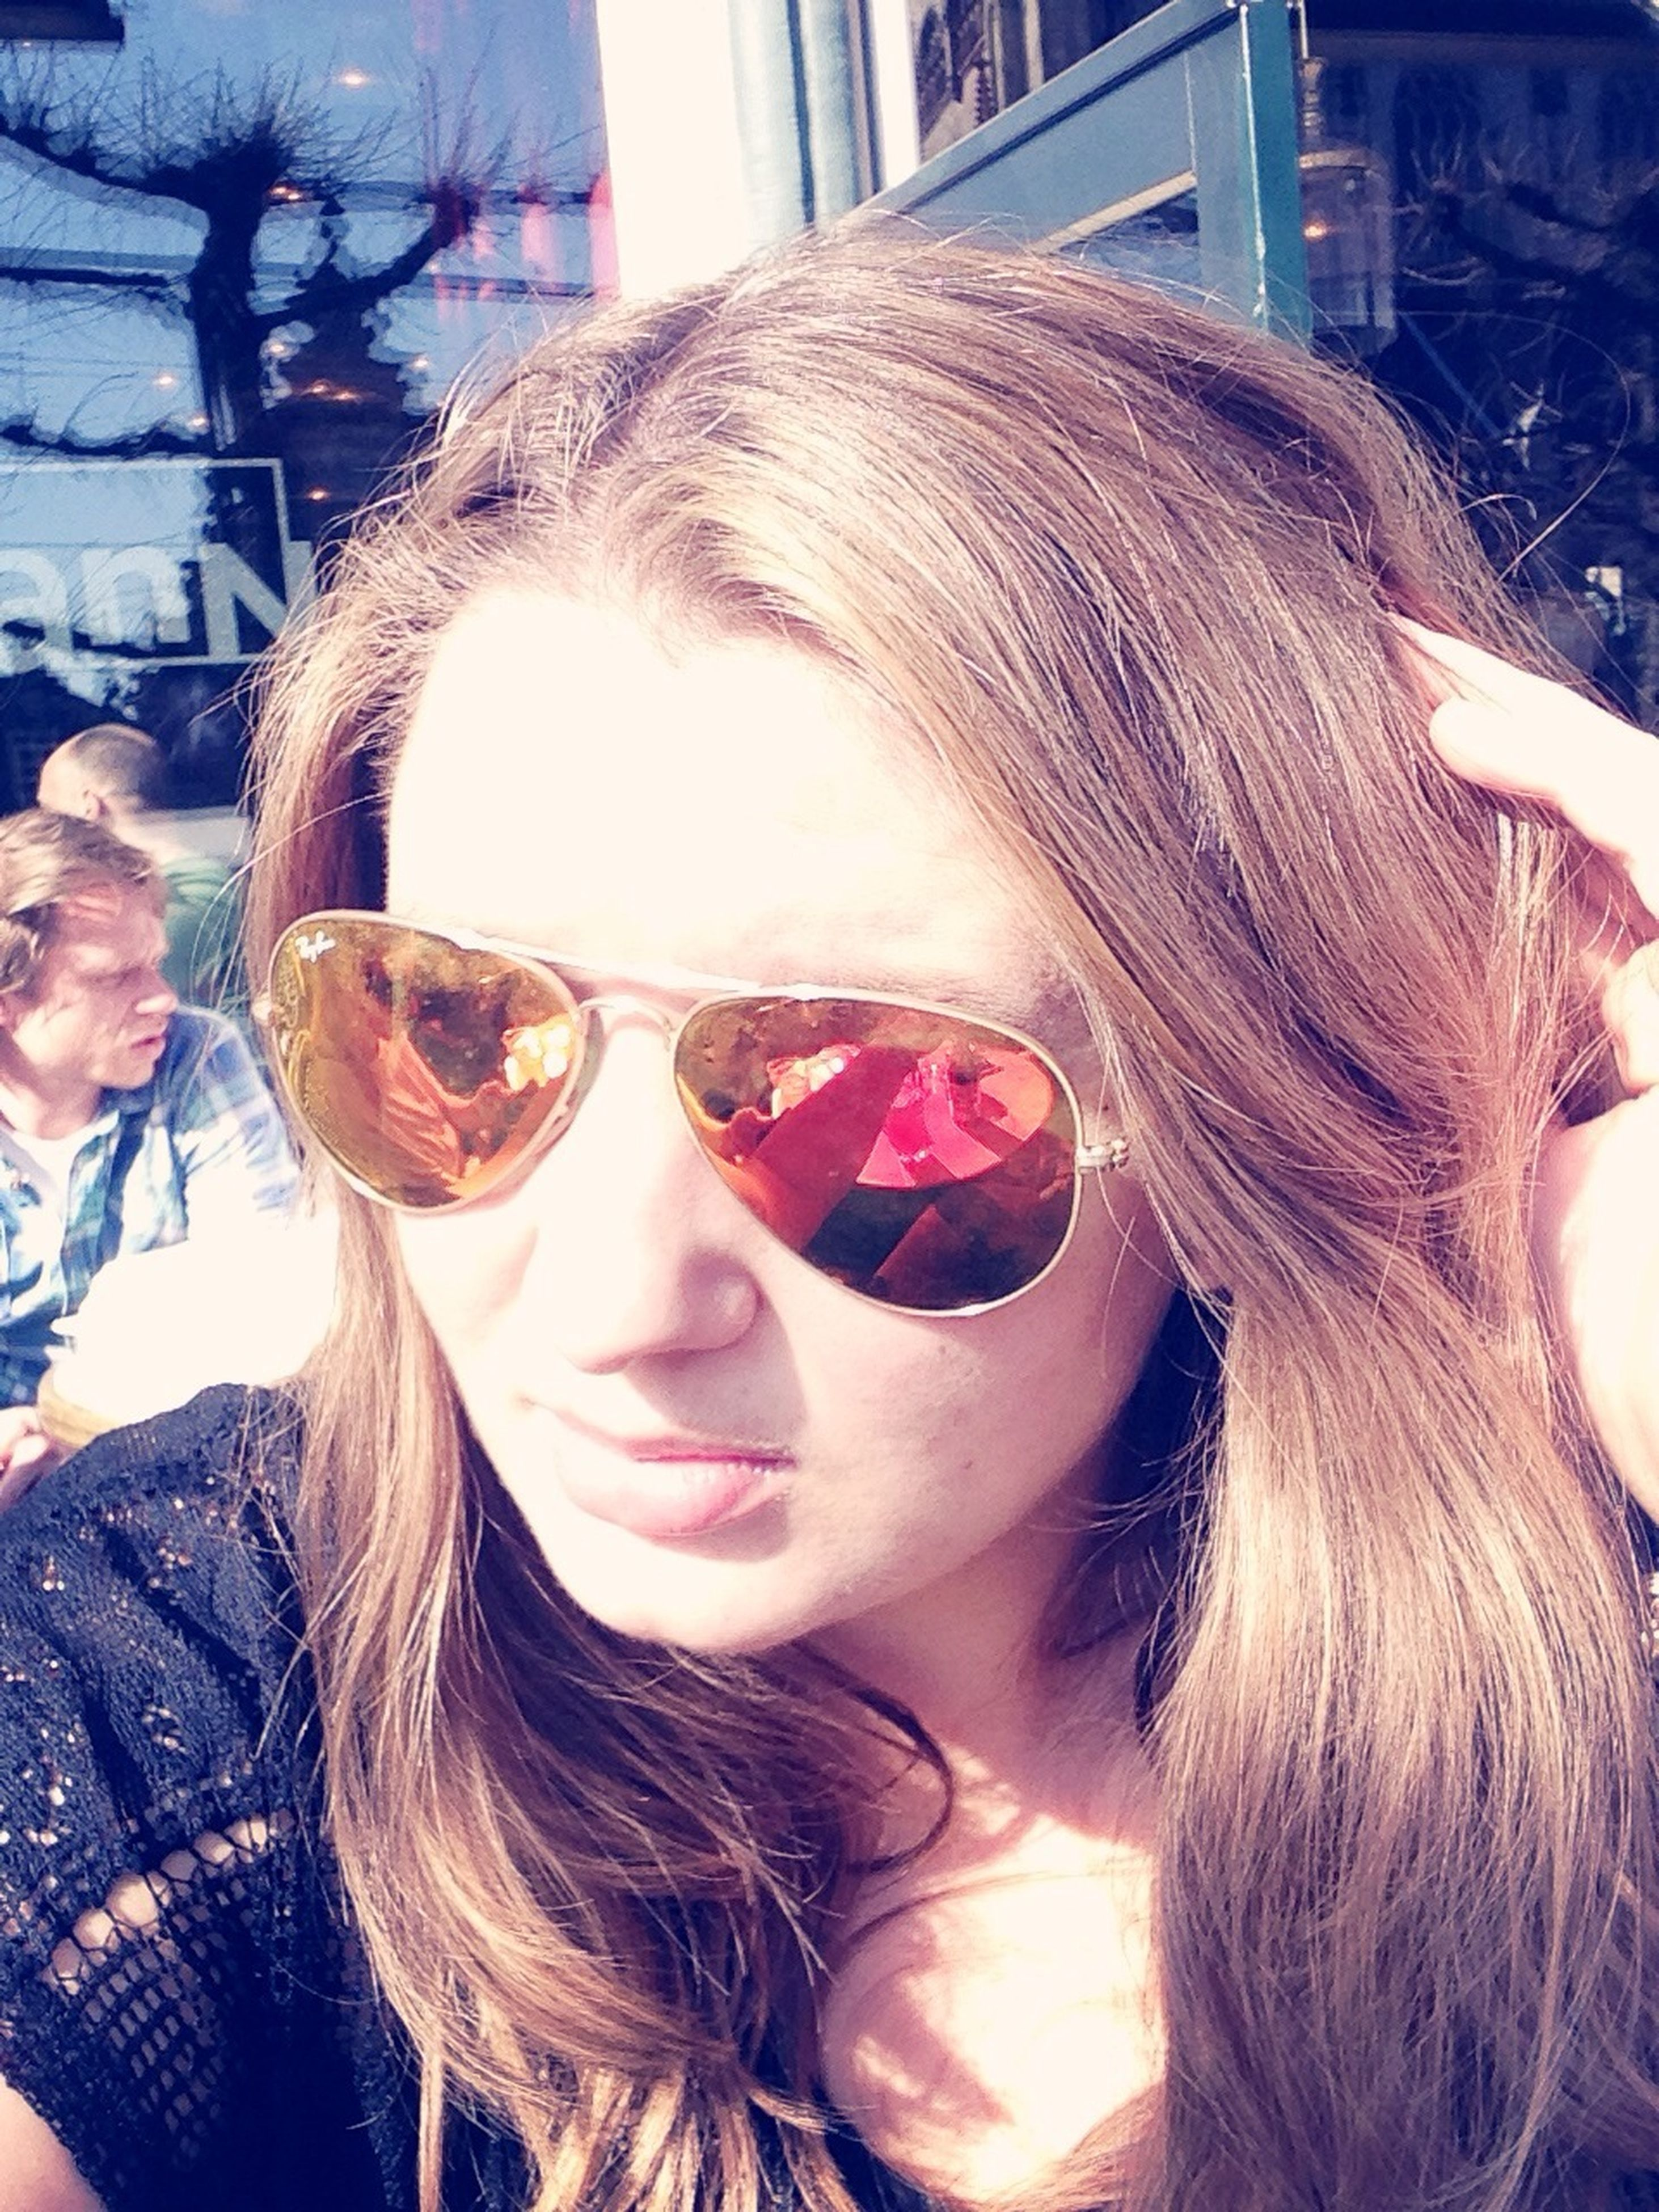 person, headshot, lifestyles, young adult, young women, portrait, leisure activity, looking at camera, long hair, smiling, head and shoulders, front view, sunglasses, close-up, blond hair, sunlight, focus on foreground